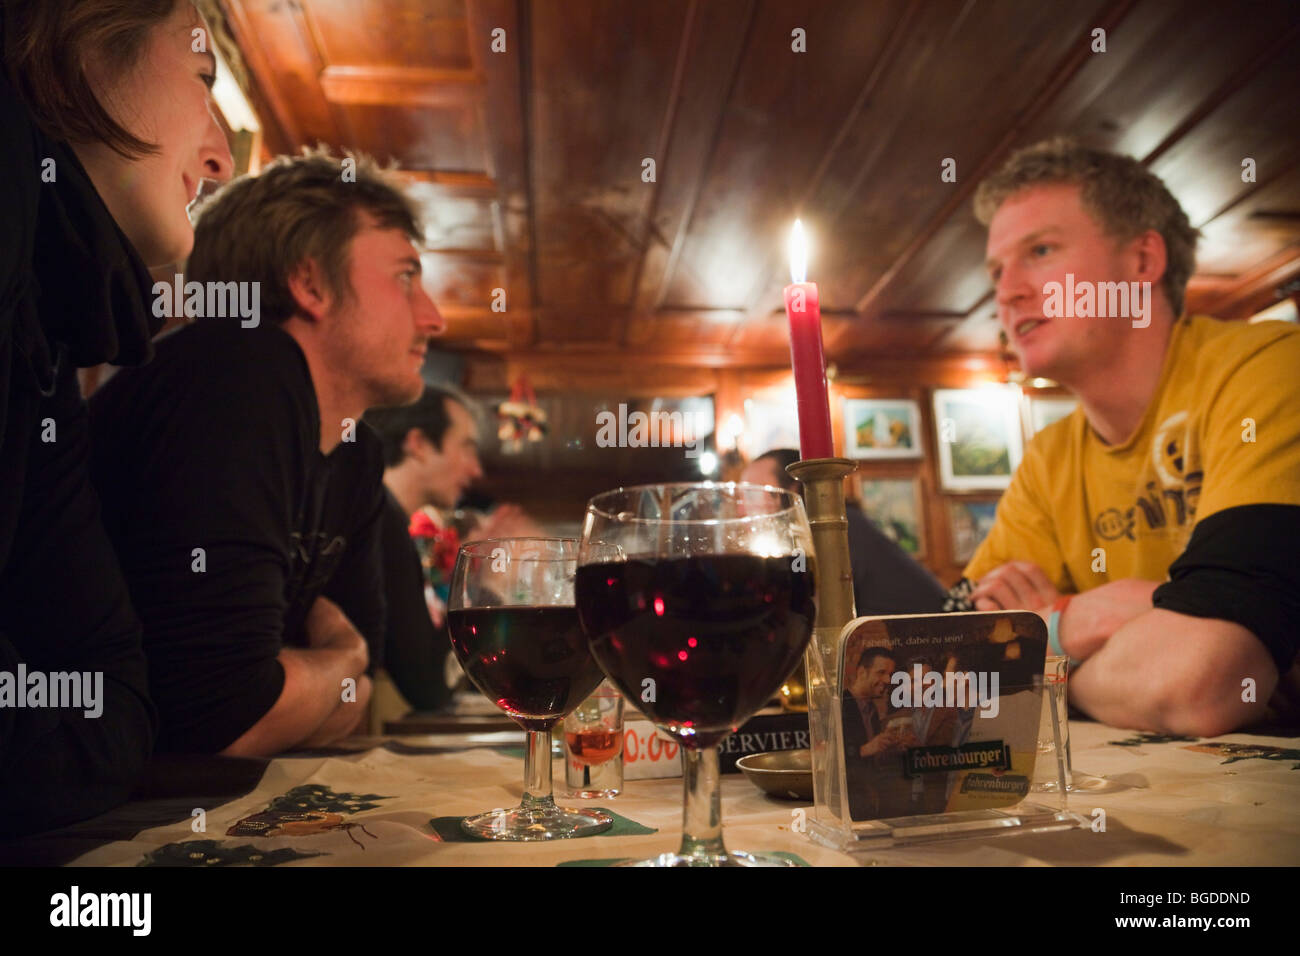 Young people Millennials sat drinking red wine around a table in 'The Underground' apres ski bar in St Anton - Stock Image